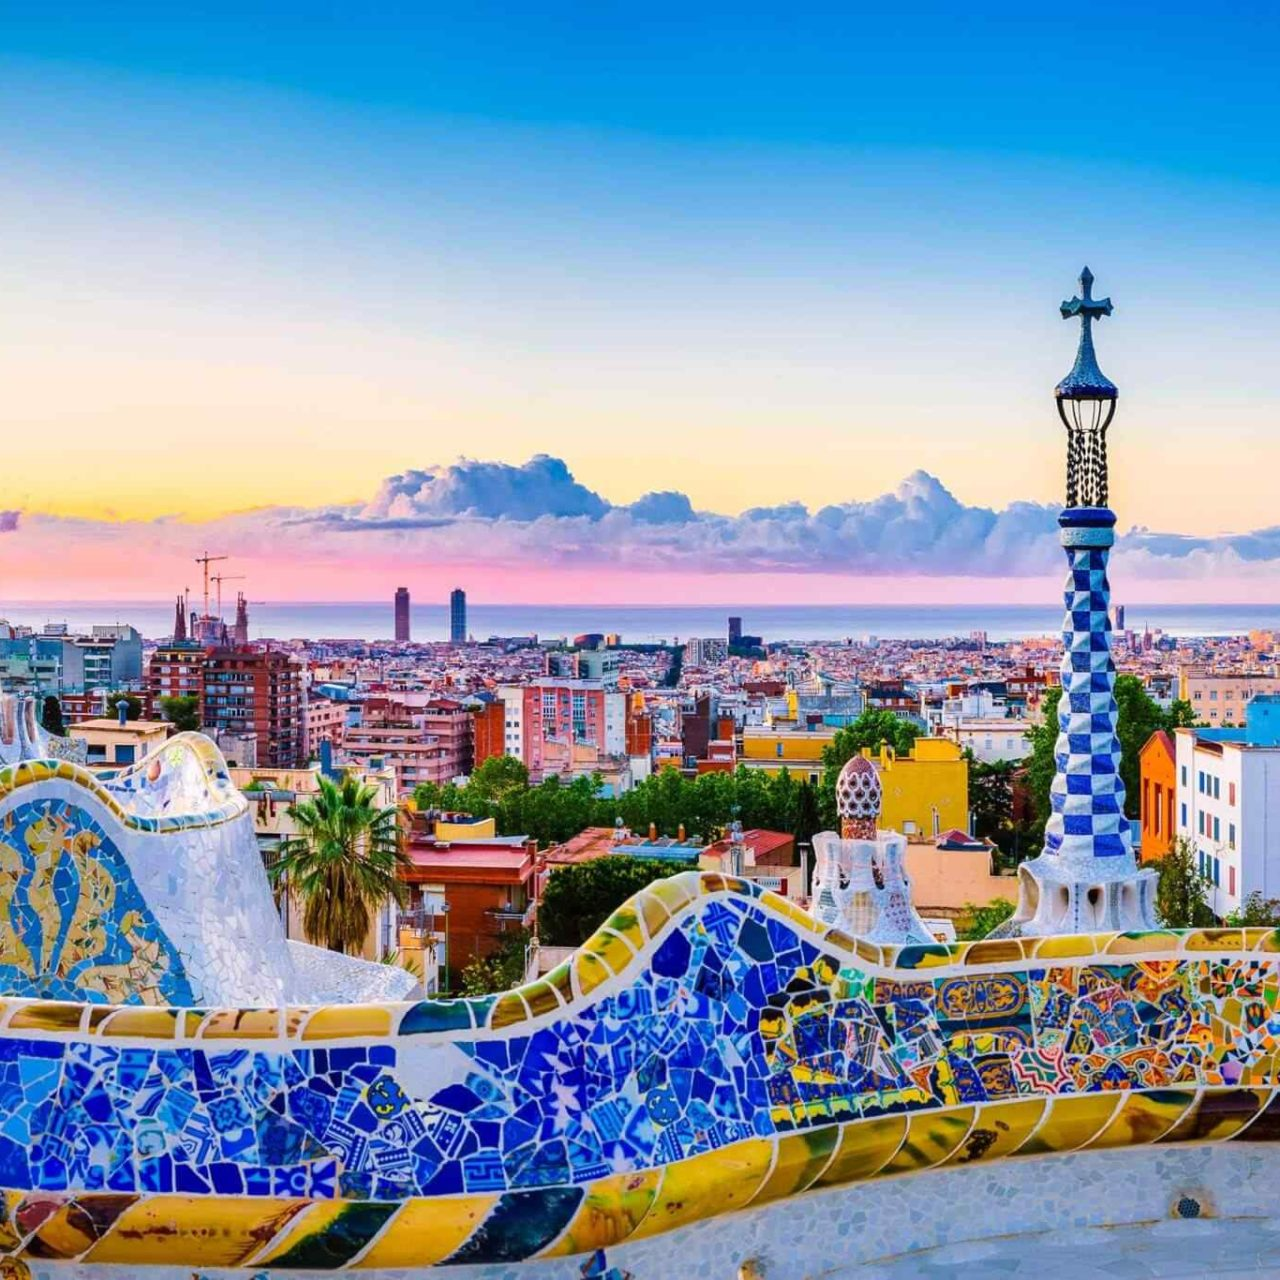 https://www.touripp.it/wp-content/uploads/2018/09/destination-barcelona-04-1280x1280.jpg